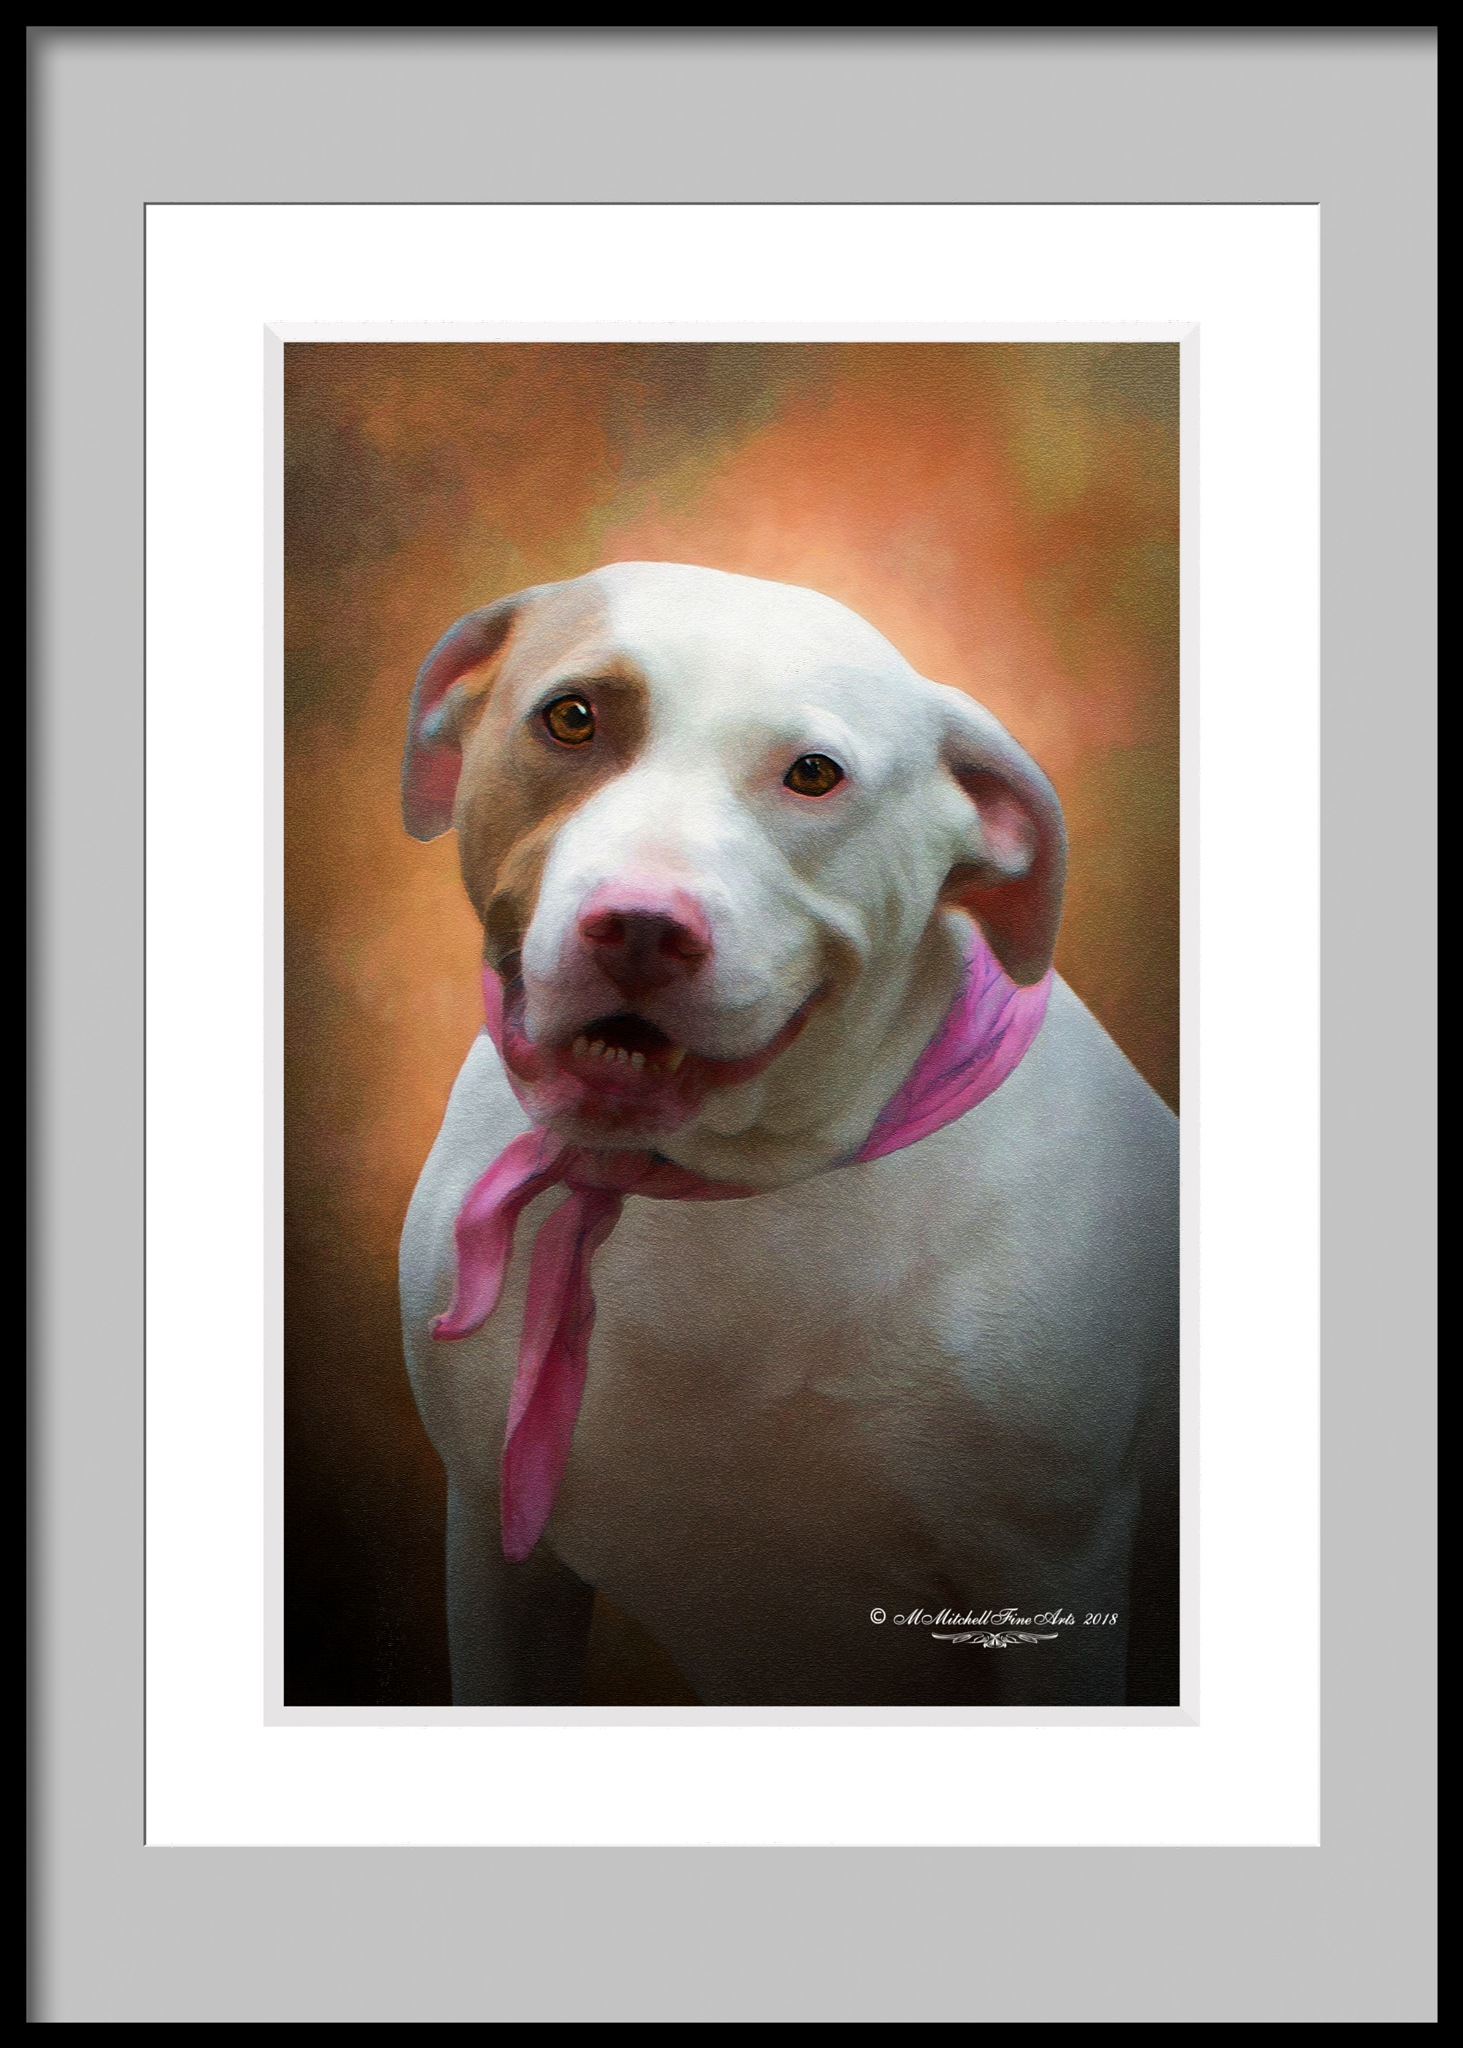 White Smiling Dog by Mary Mitchell